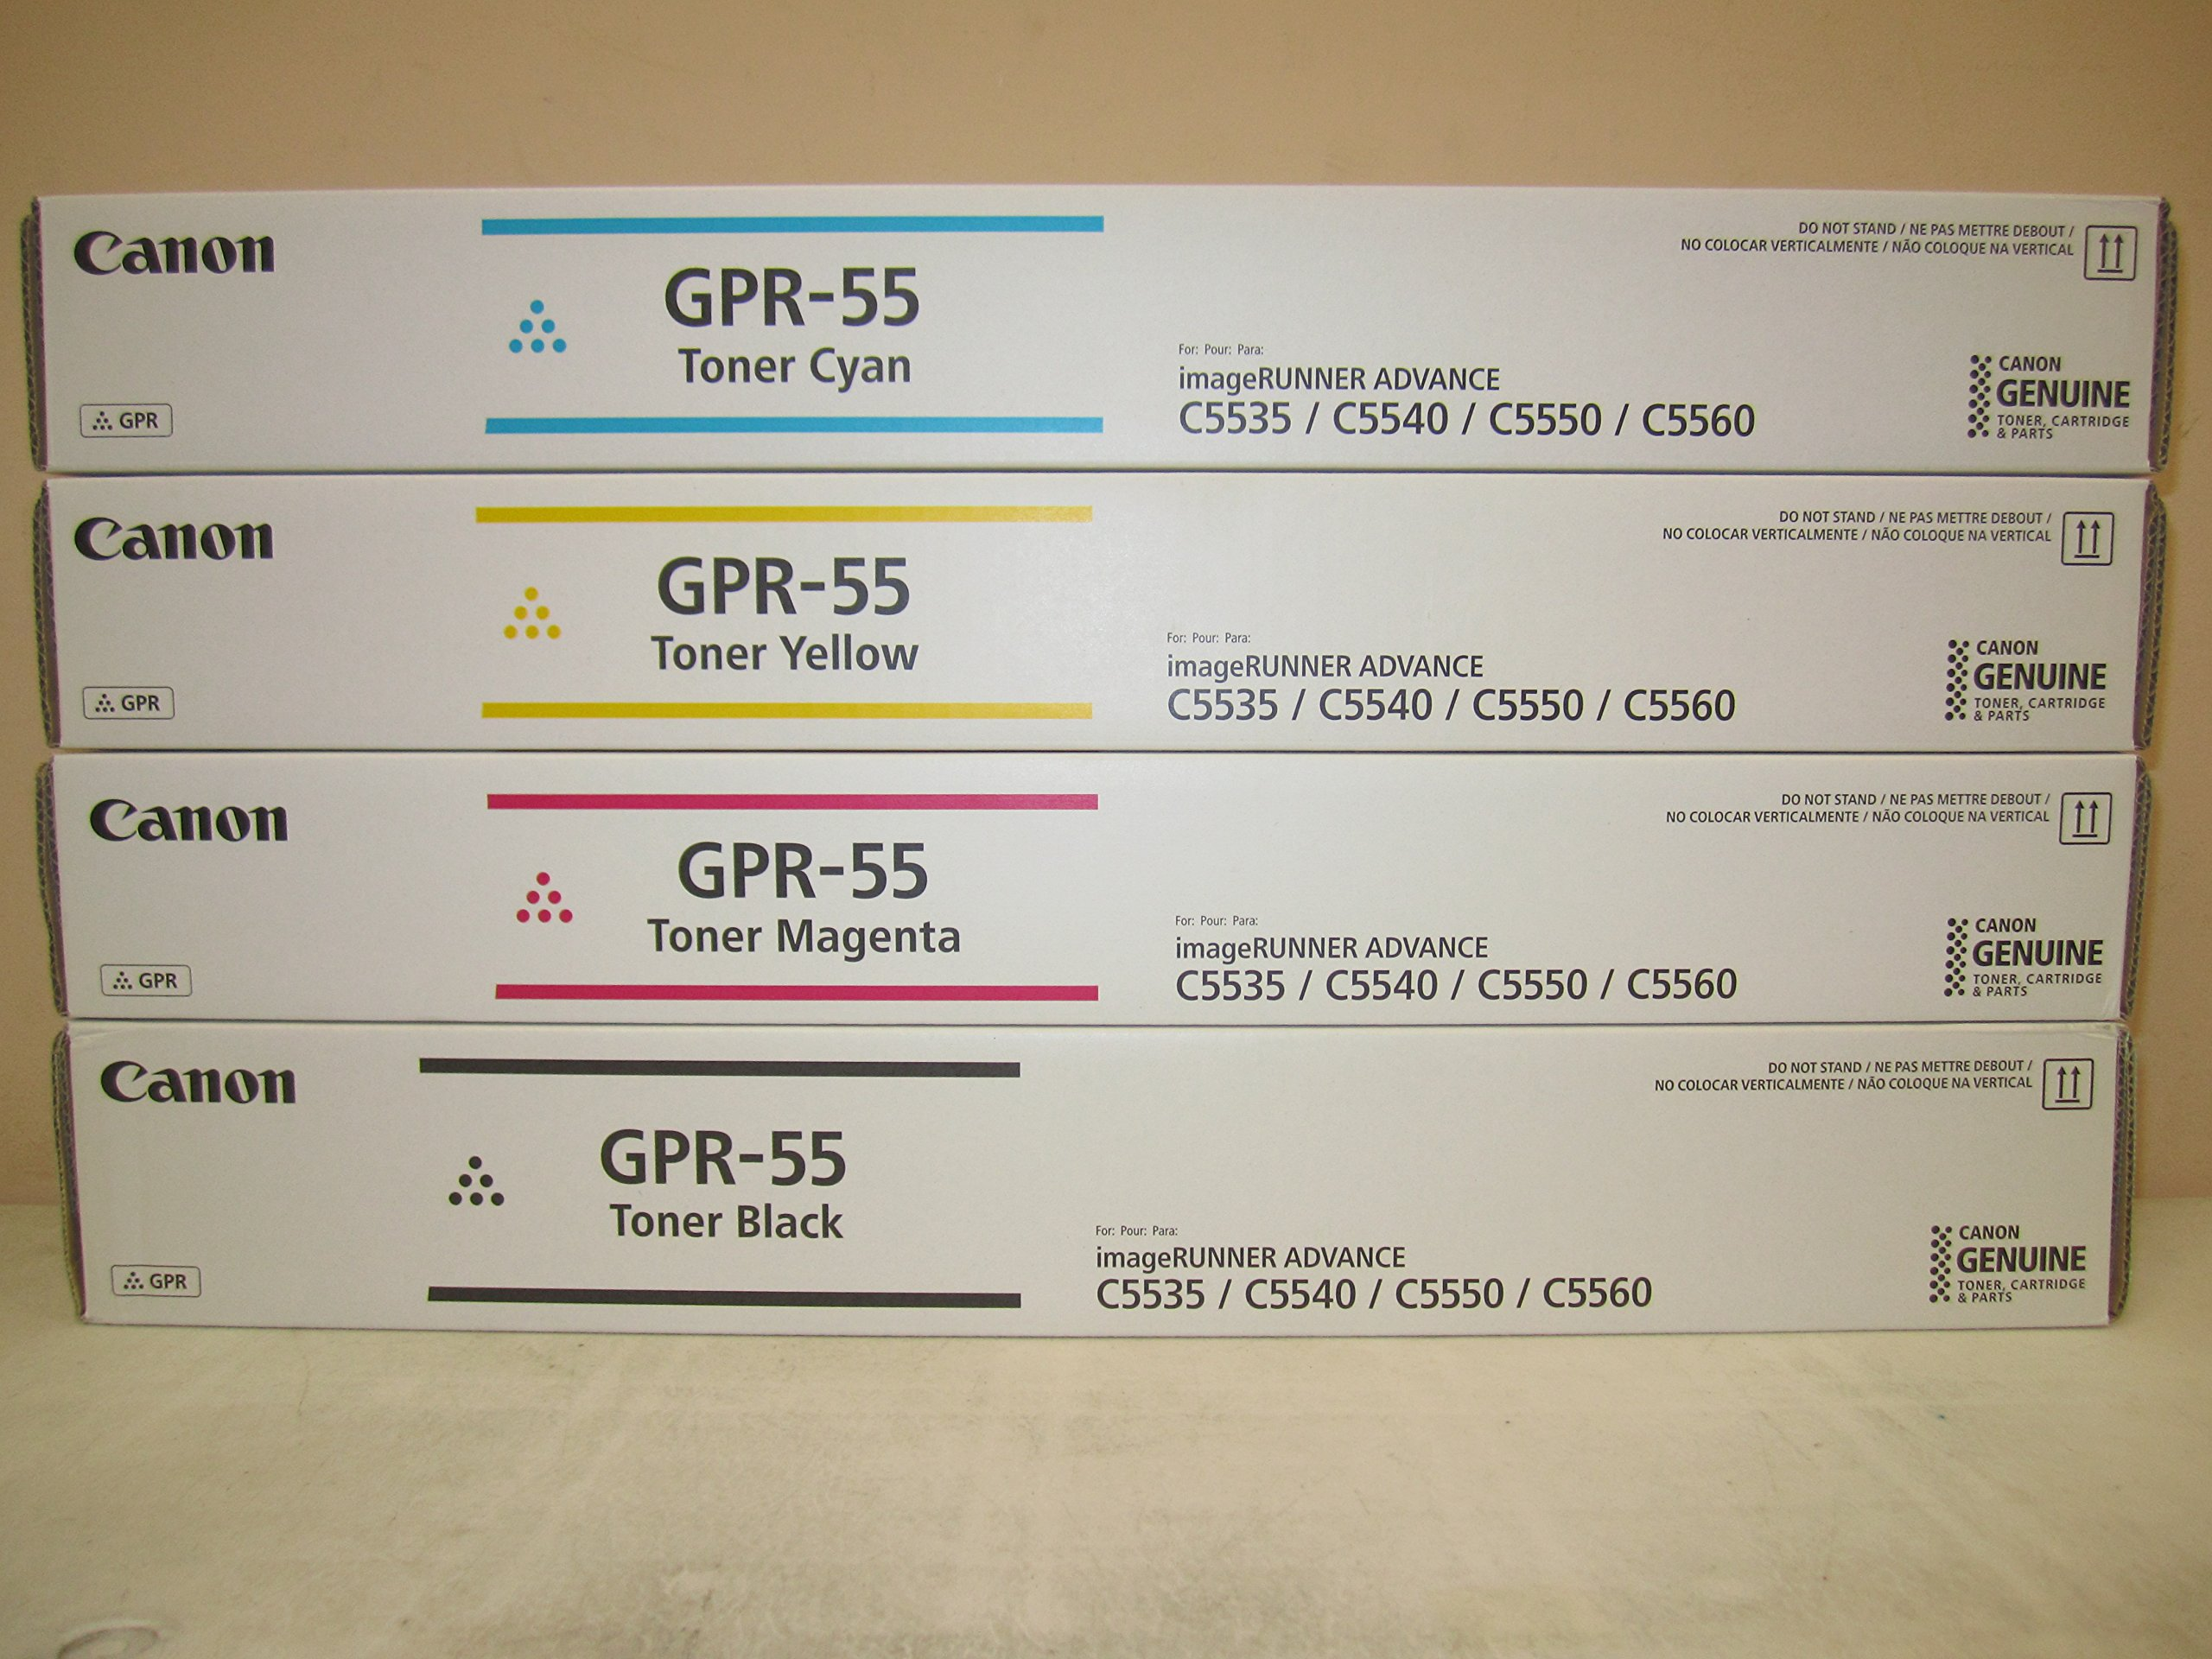 GENUINE CANON GPR-55 BLACK CYAN MAGENTA YELLOW TONER SET for use in the Canon imageRUNNER ADVANCE C5535i / C5540i / C5550i and C5560i by Canon